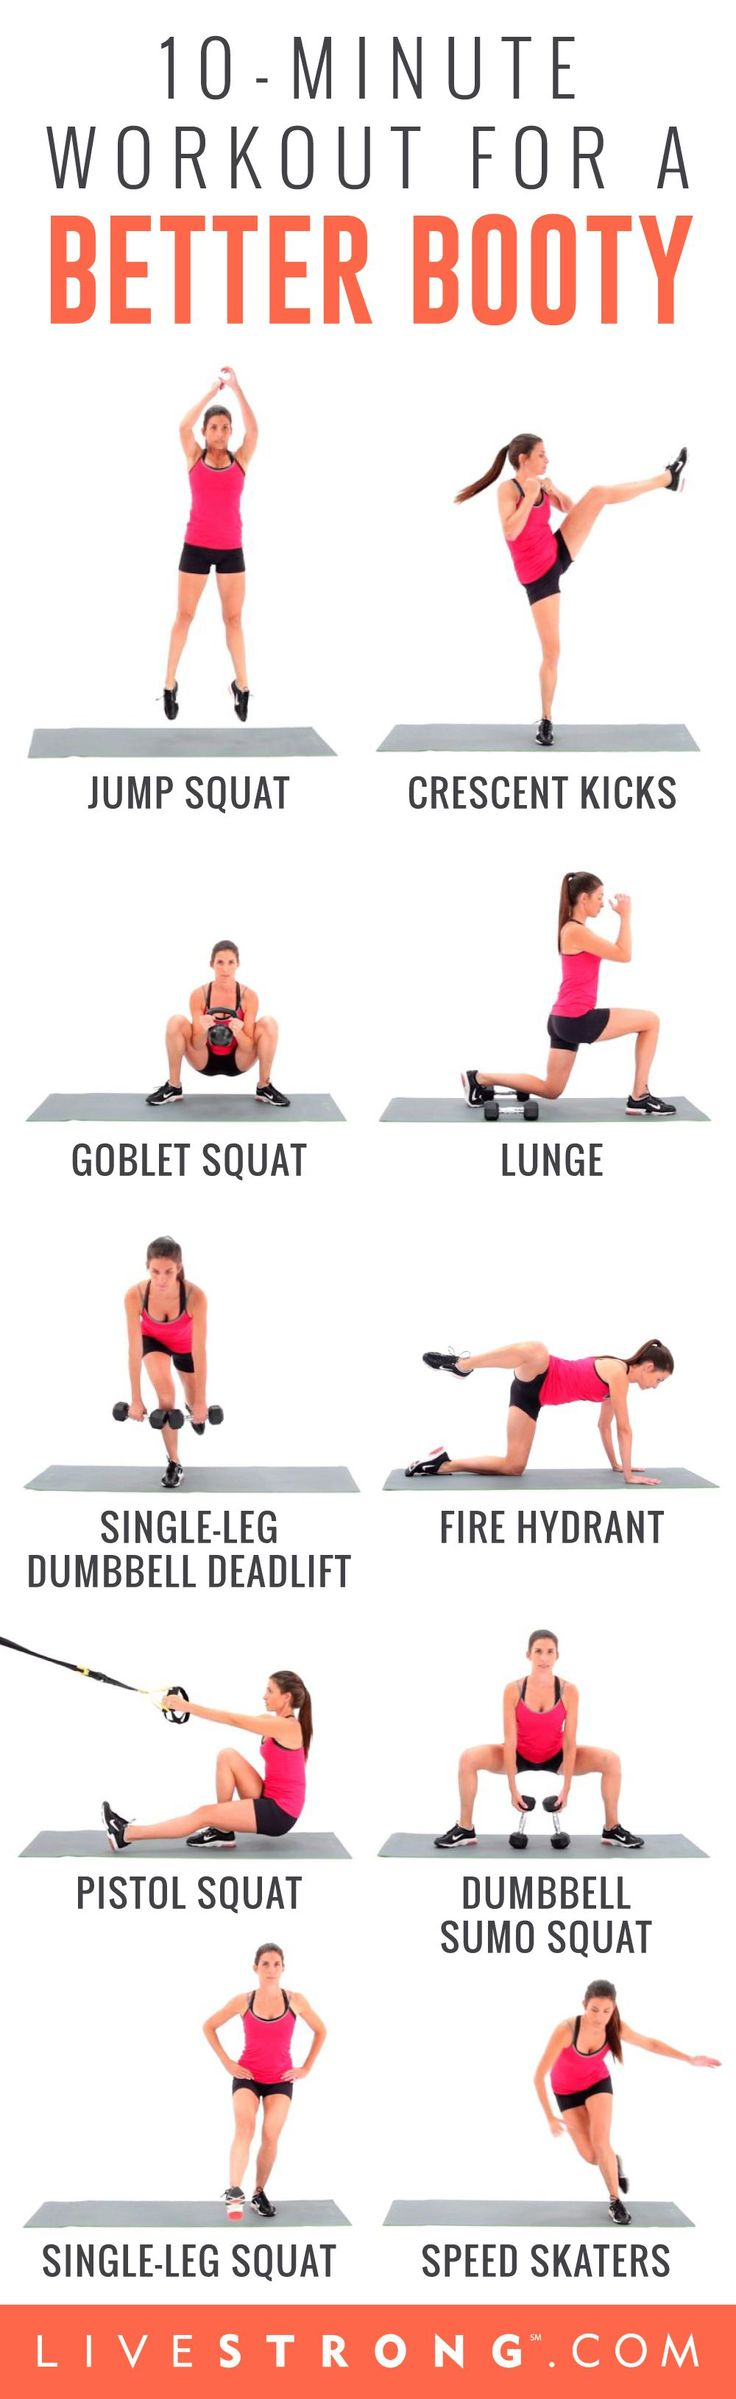 72 Best Healthy Living Images On Pinterest Exercises Cooking Circuit Crossfit Paleo Dietcaveman Style 10 Minute Workout For A Better Booty